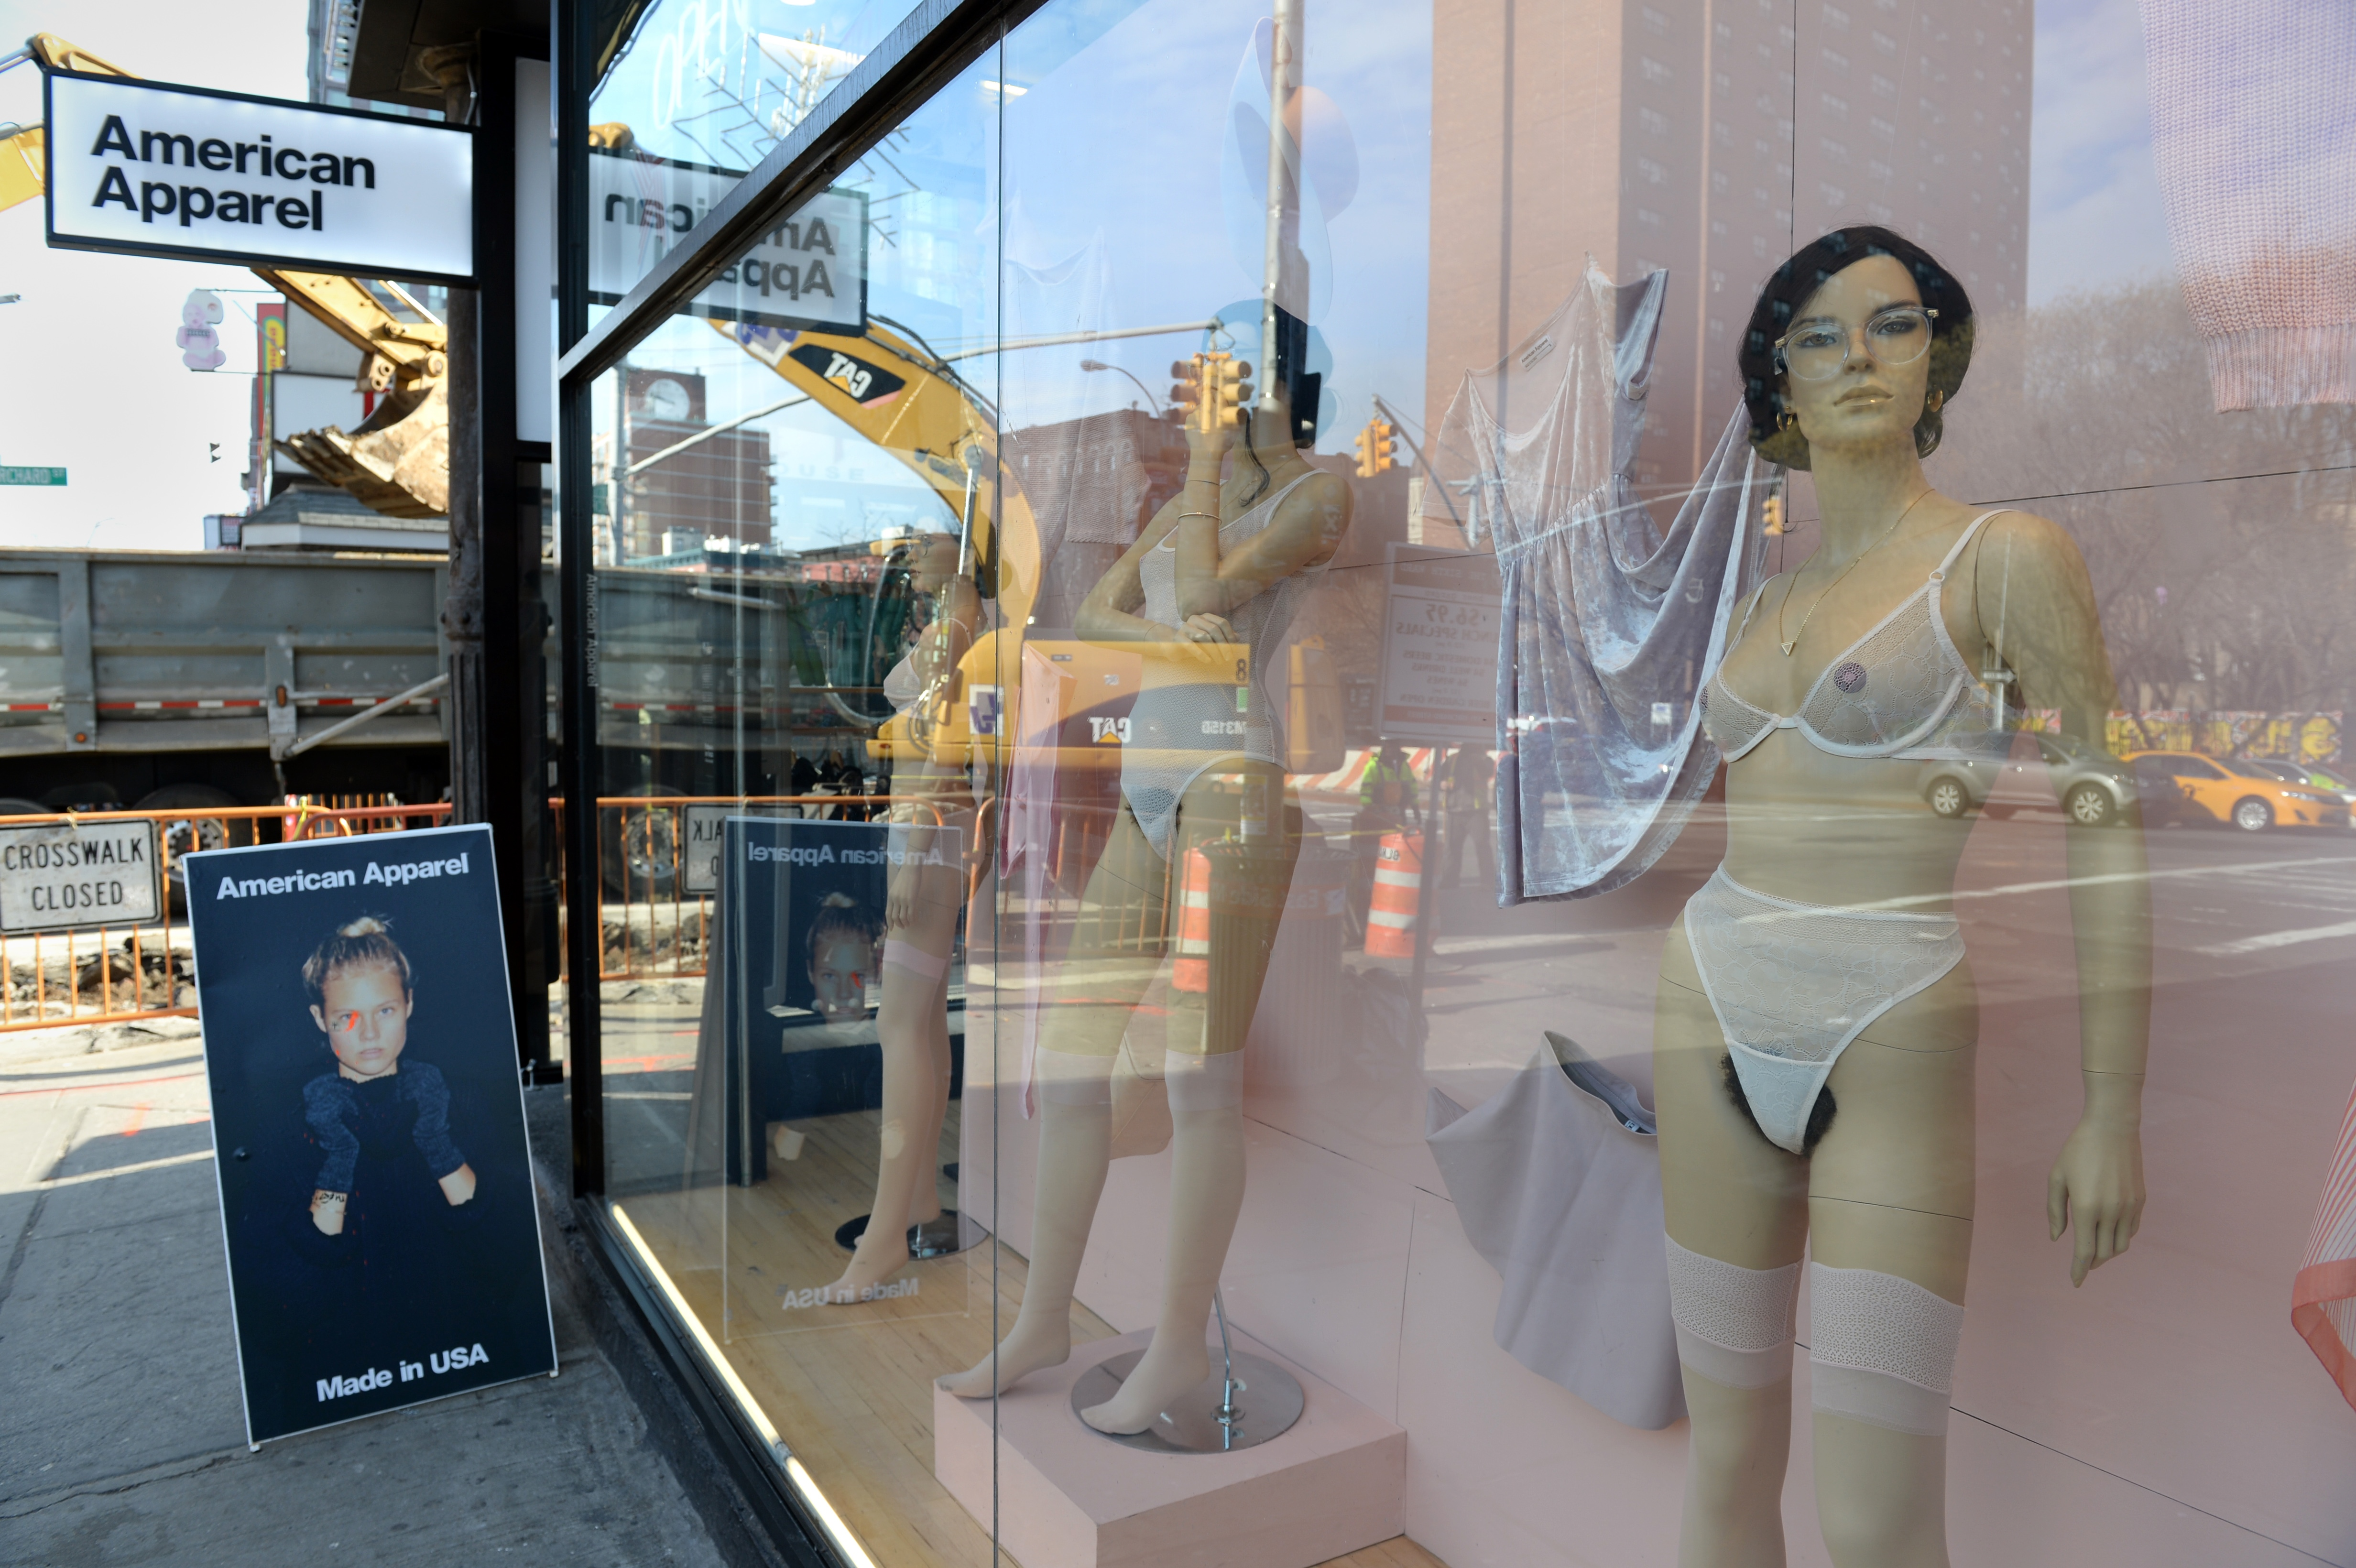 Say farewell to American Apparel's out-there window displays.